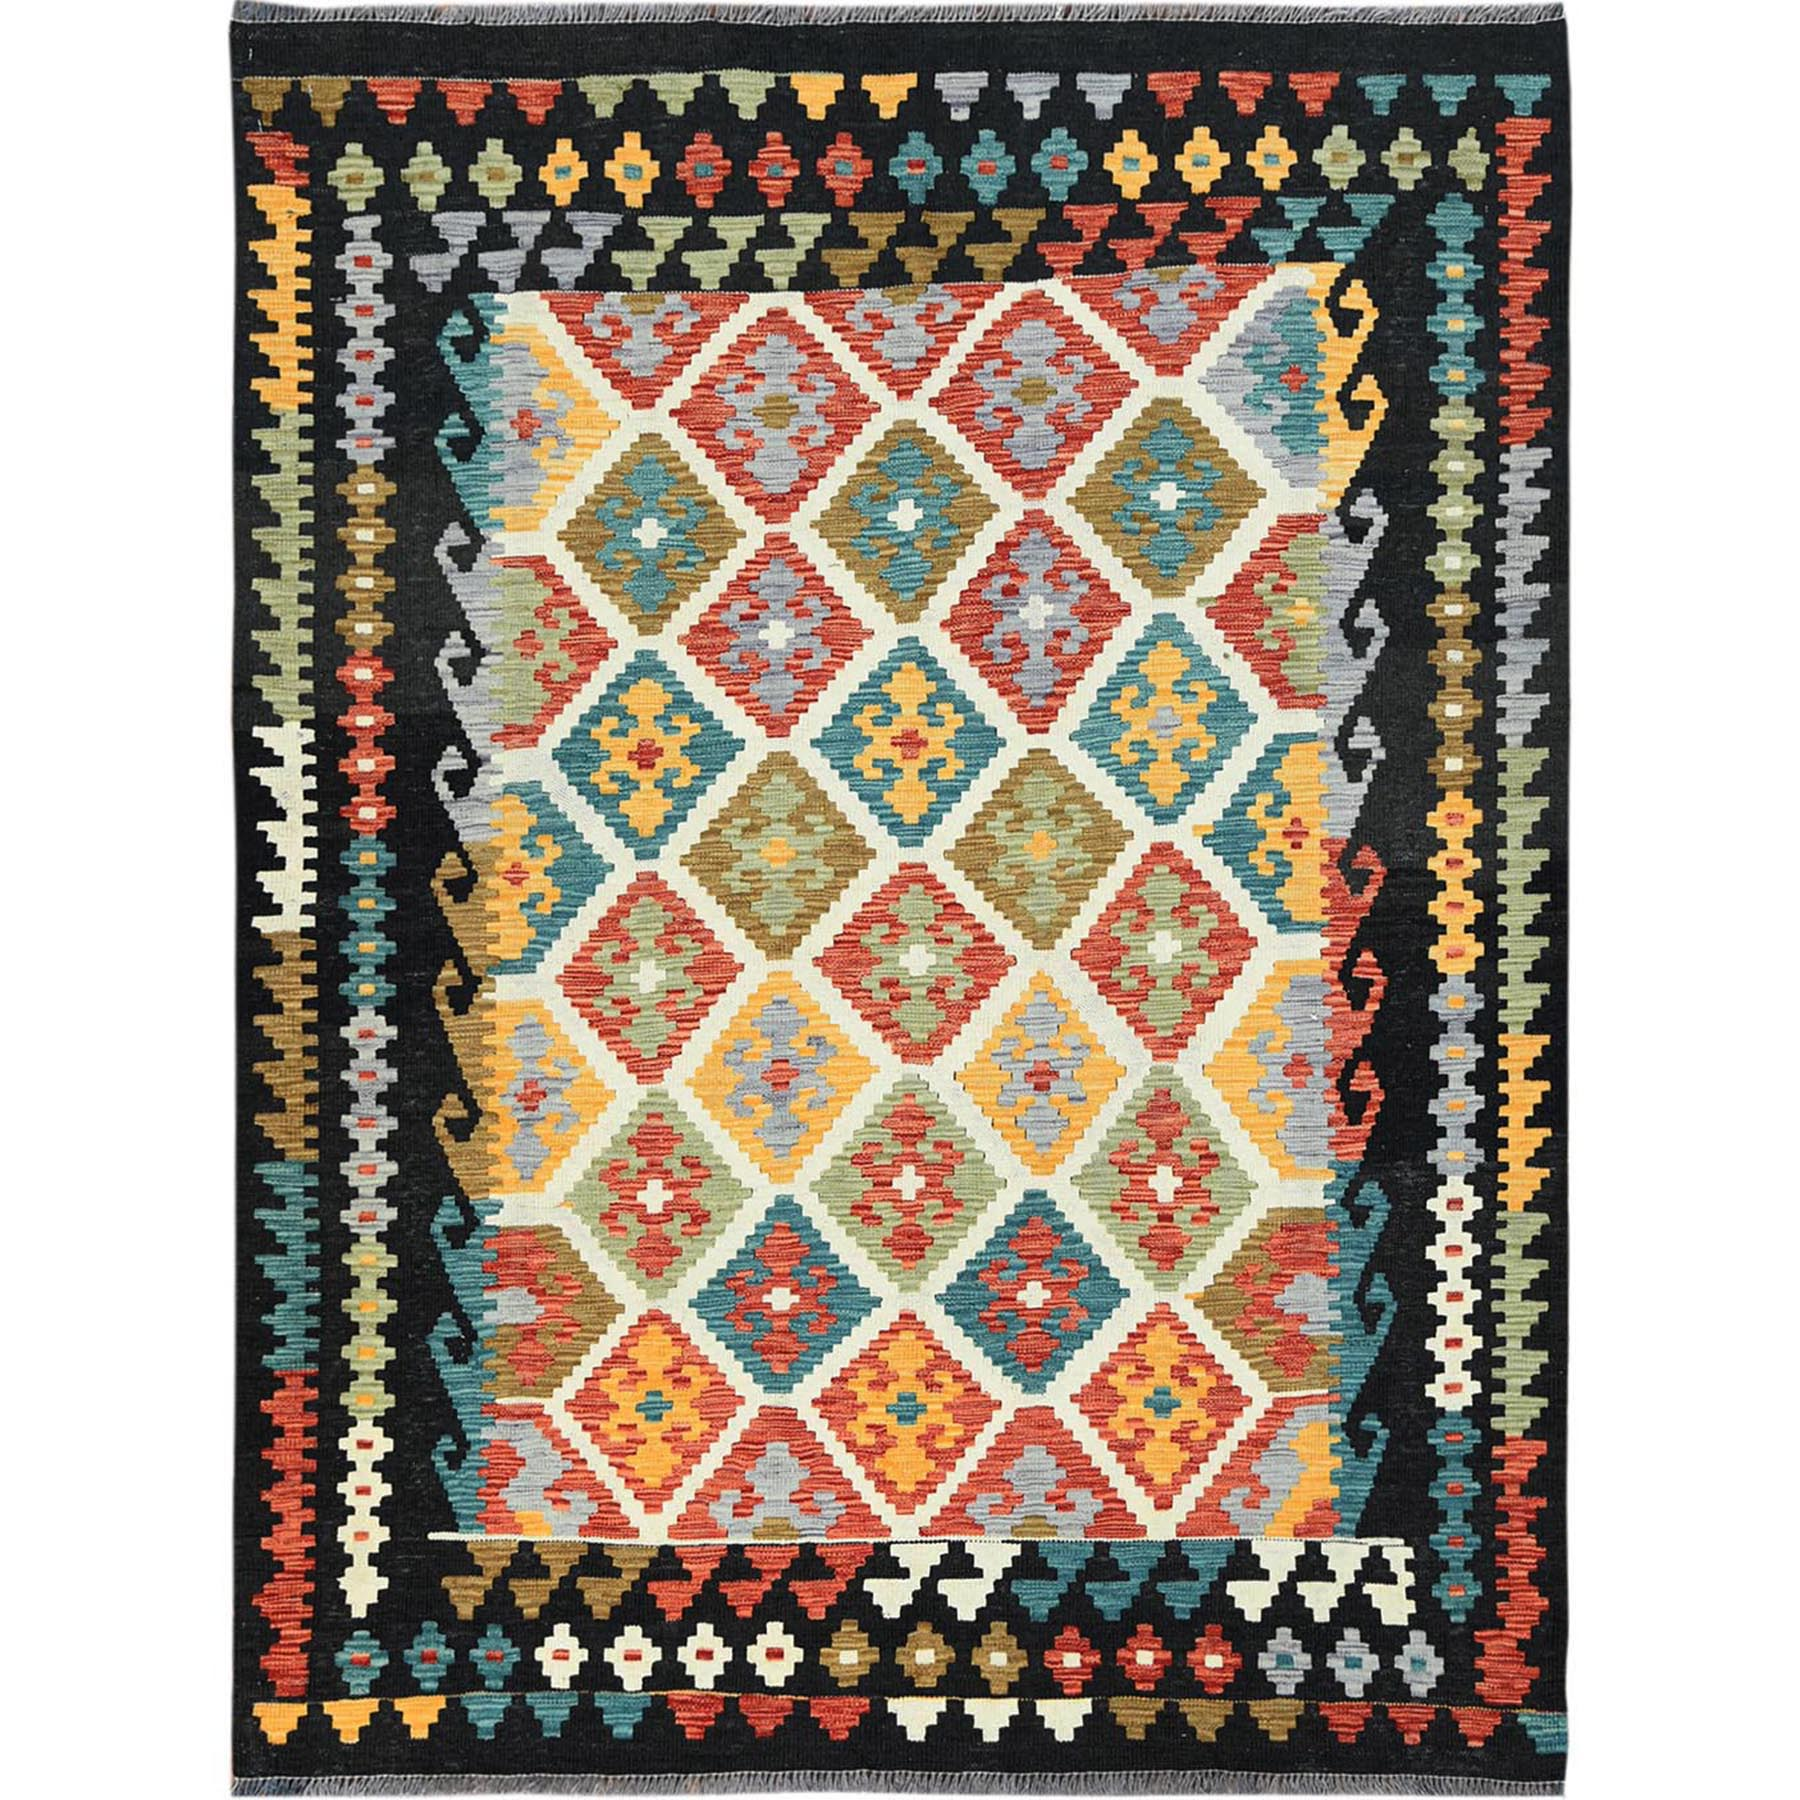 "4'10""x6'5"" Black With Pop Of Various Colors Afghan Kilim Reversible Vibrant Wool Hand Woven Oriental Rug"